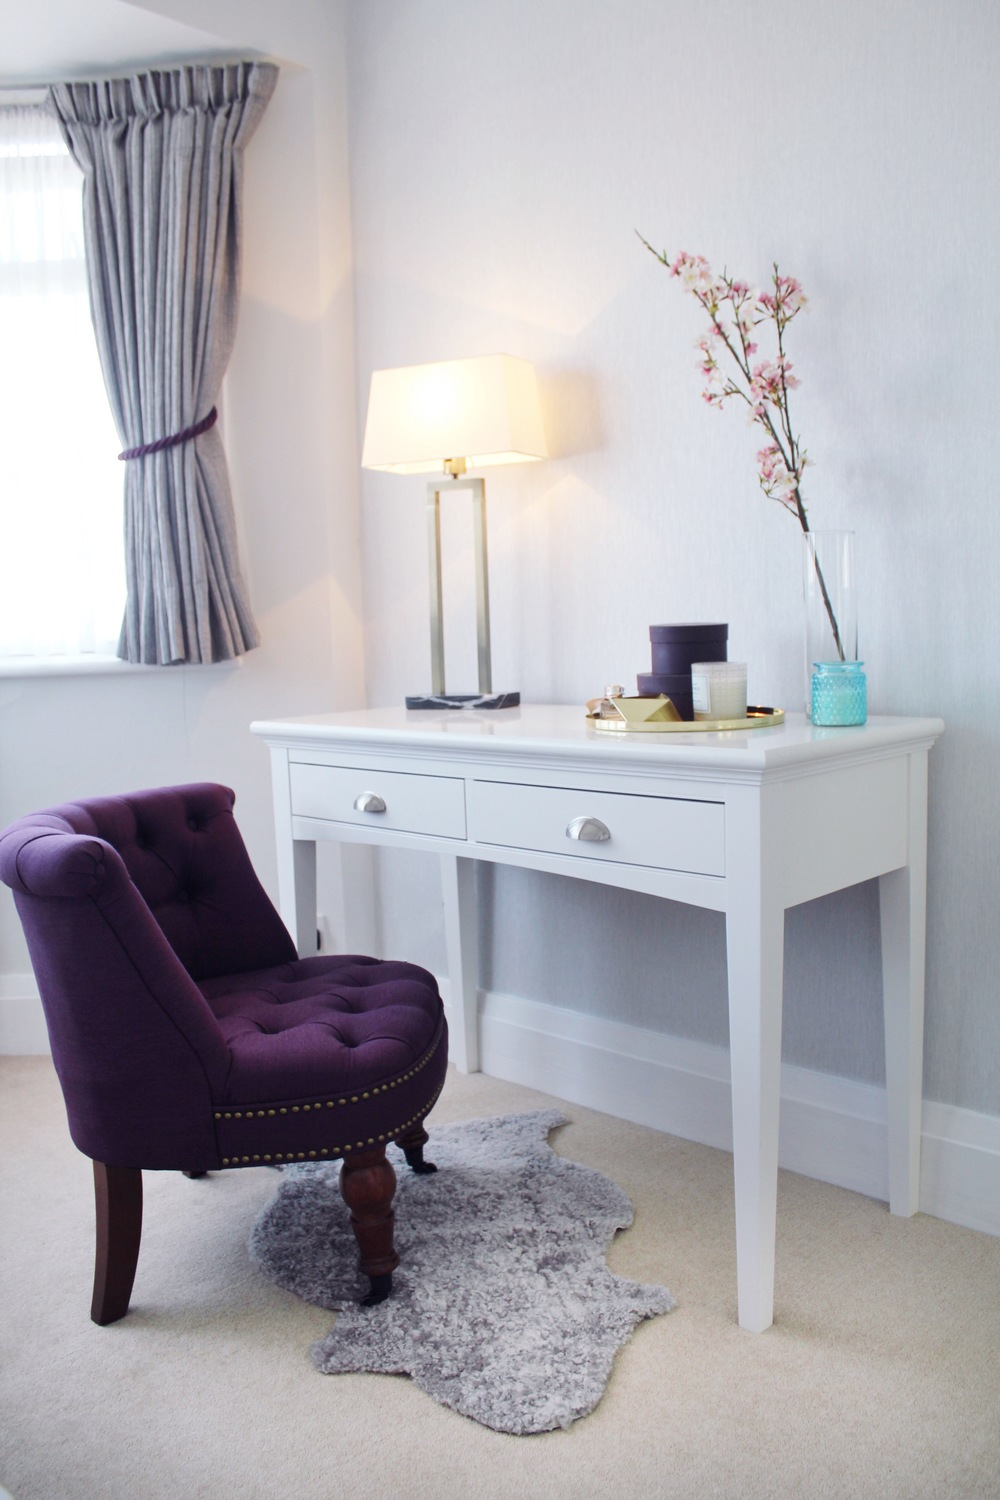 Purple and grey bedroom makeover for my first interior for Interior design bedroom grey